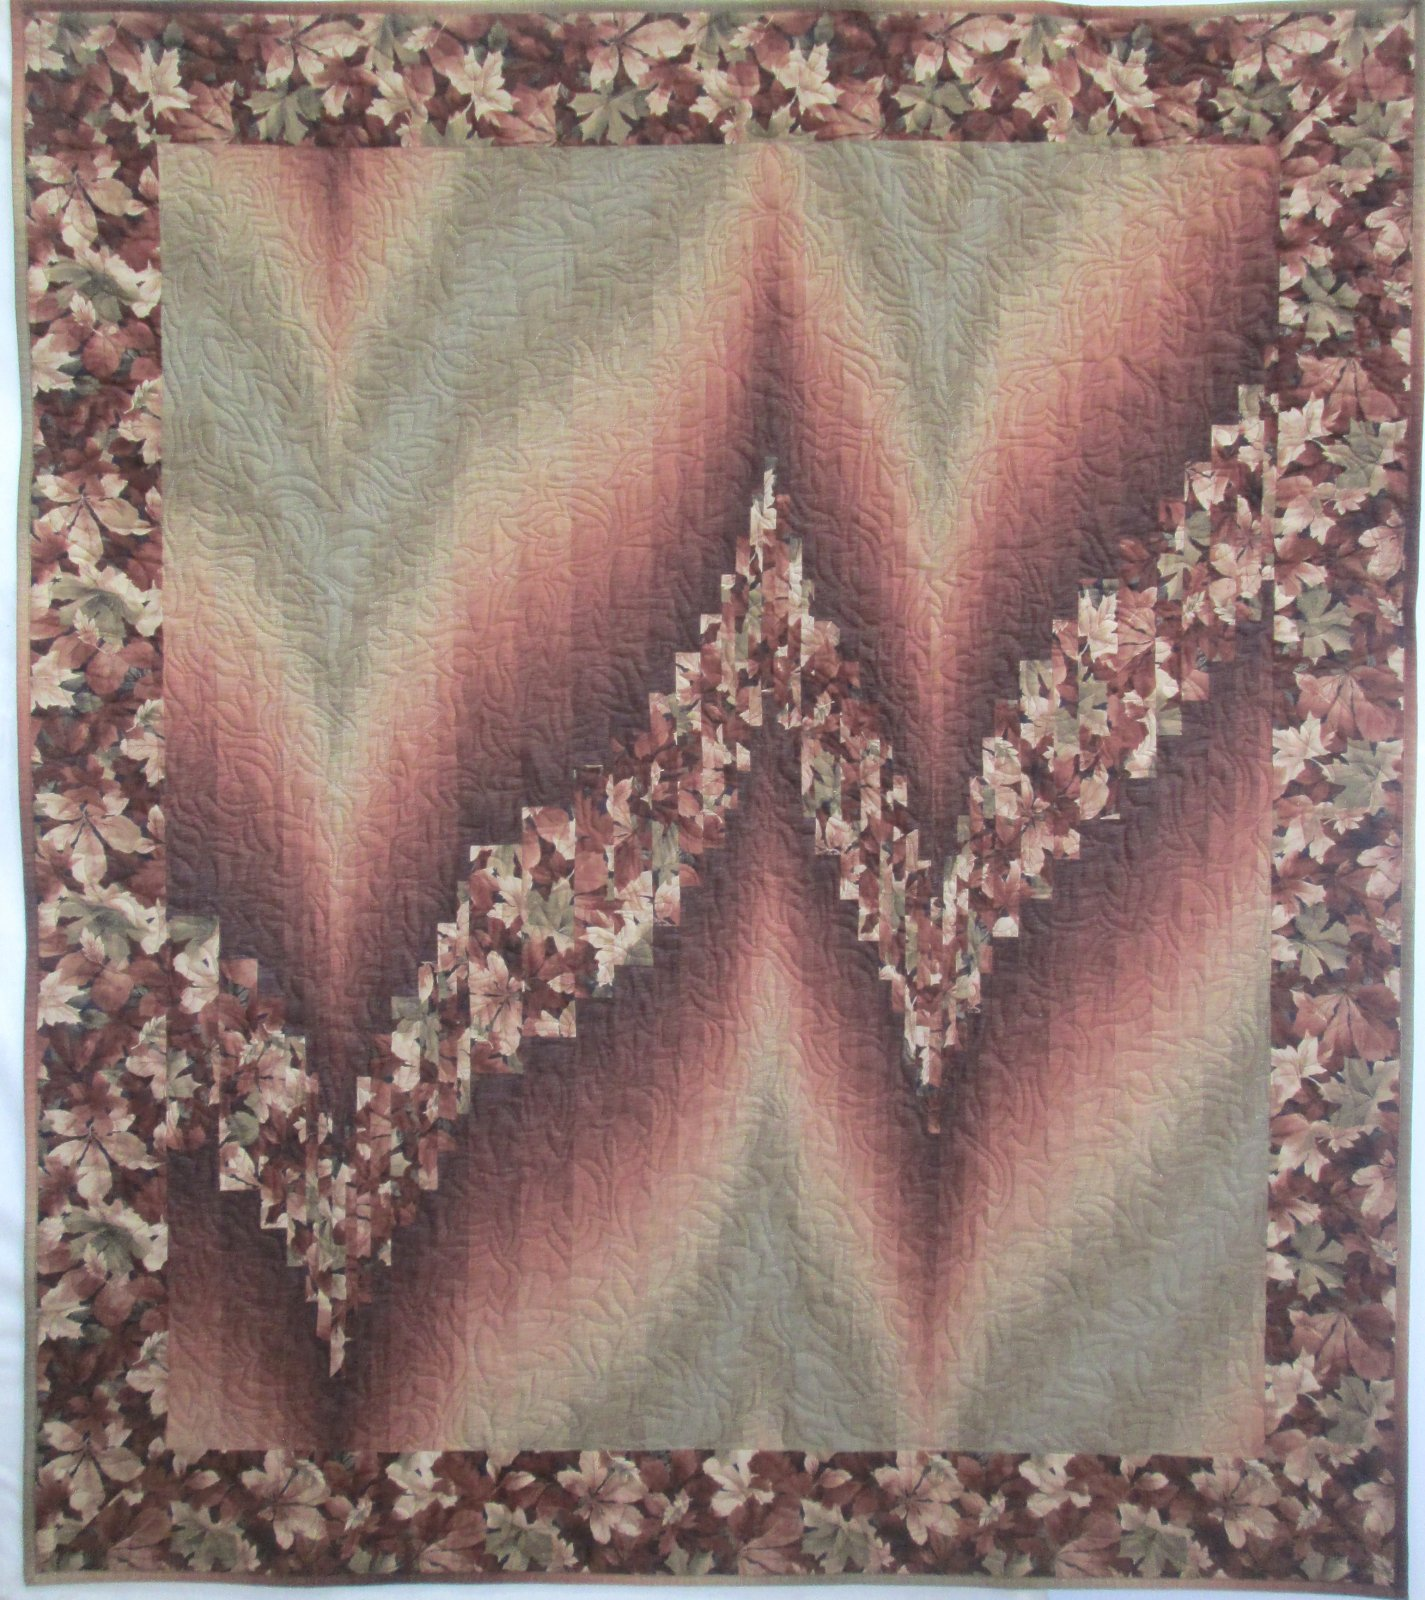 Falling Leaves Sew Simple Bargello Kit